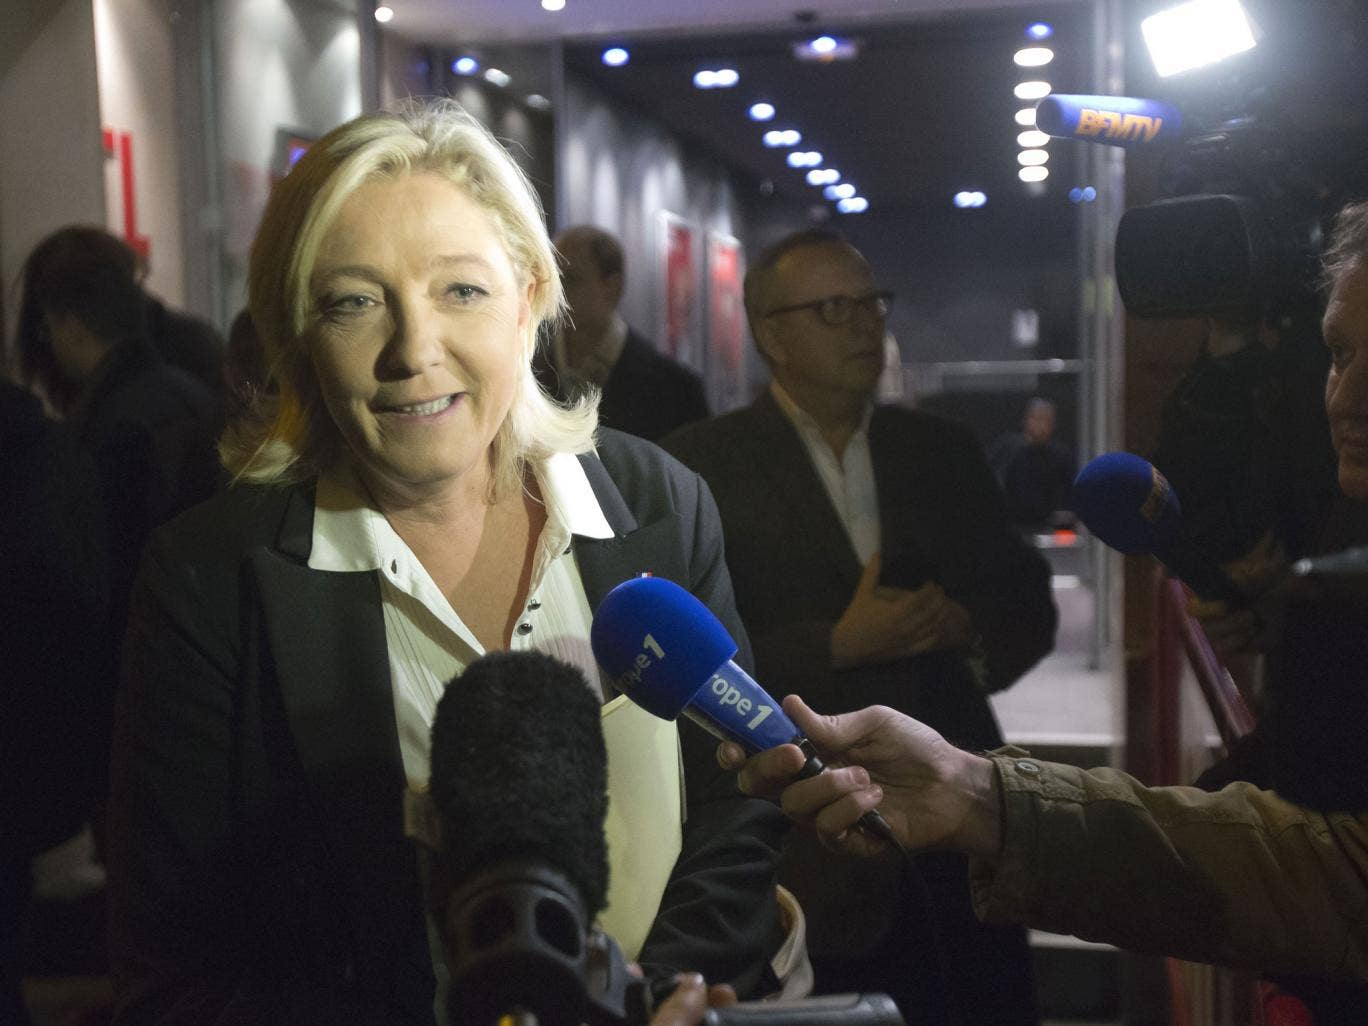 Marine Le Pen comments last night on her party's success